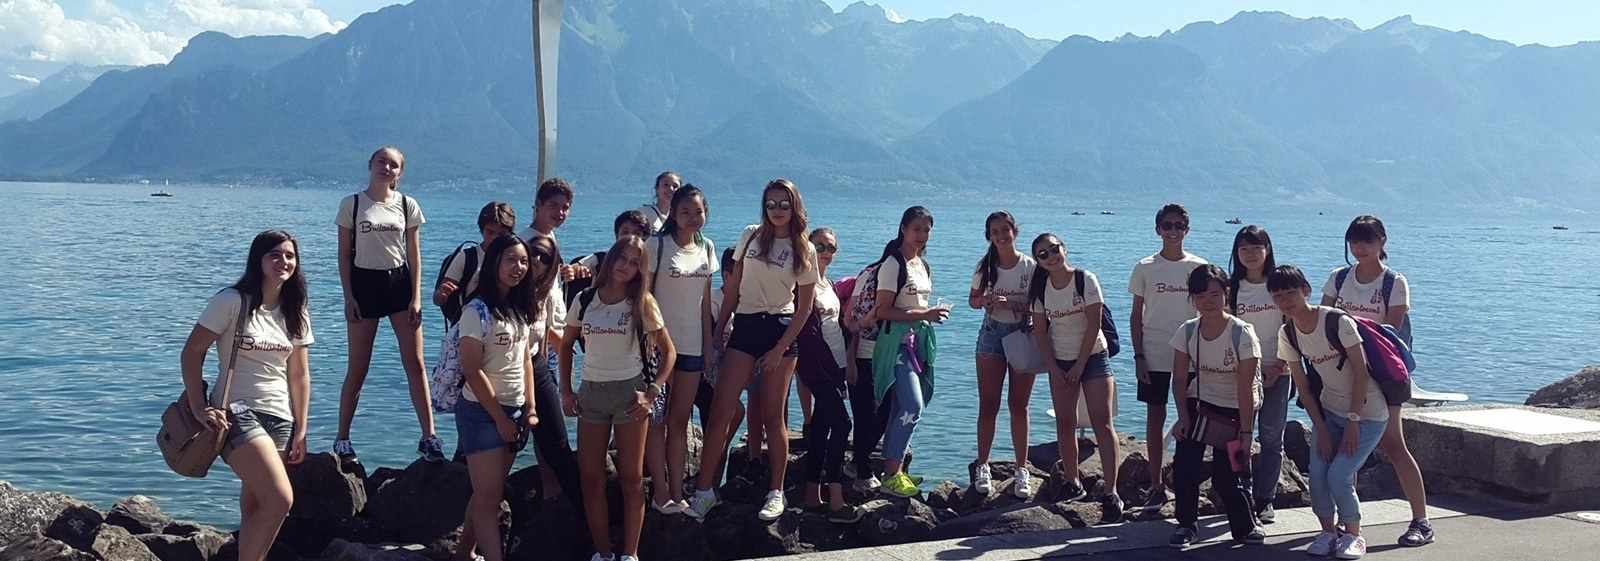 201-Vevey-Brillantmont-Summer-Course